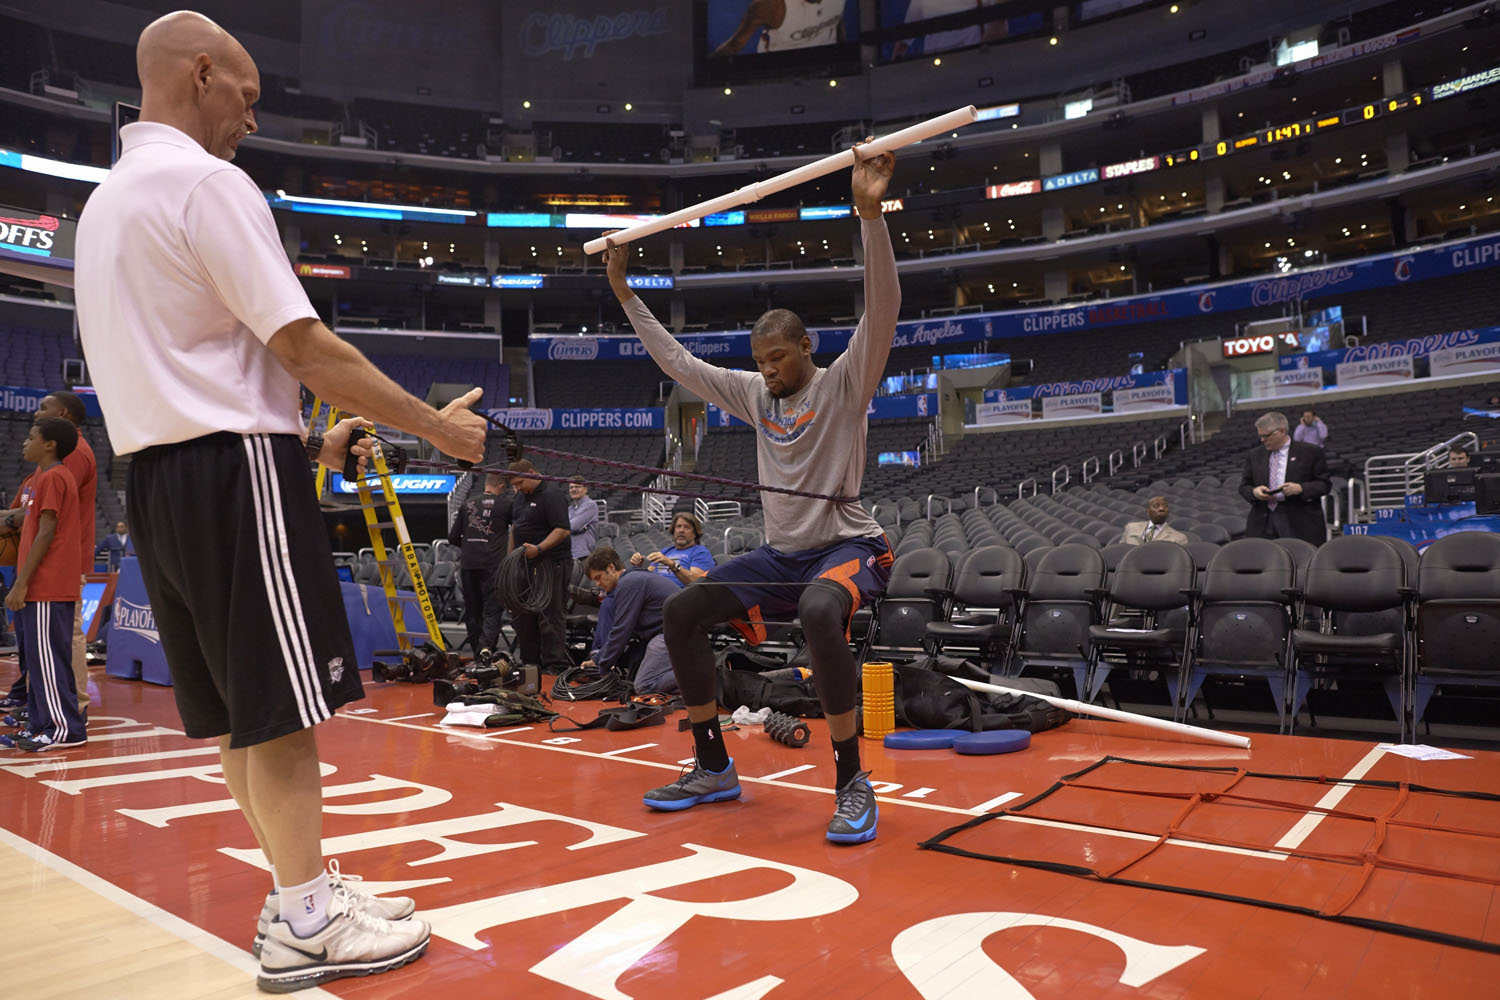 Kevin Durant works out before a game against the Los Angeles Clippers in the 2014 NBA Playoffs.